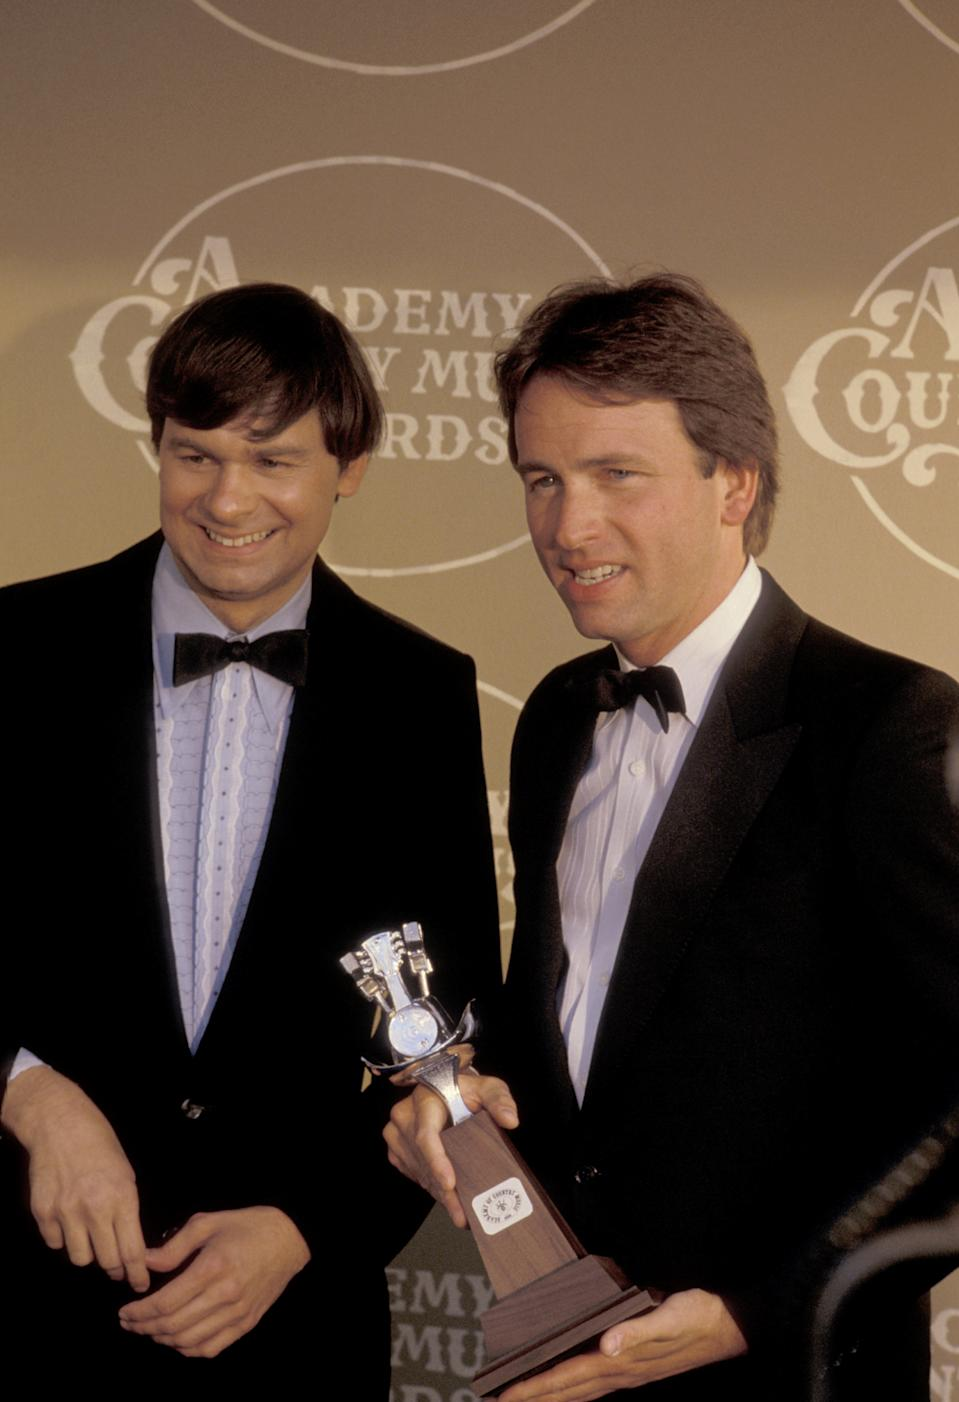 John Ritter with his brother Tom Ritter at the 20th Annual Academy of Country Music Awards. (Photo: Ron Galella/Ron Galella Collection via Getty Images)